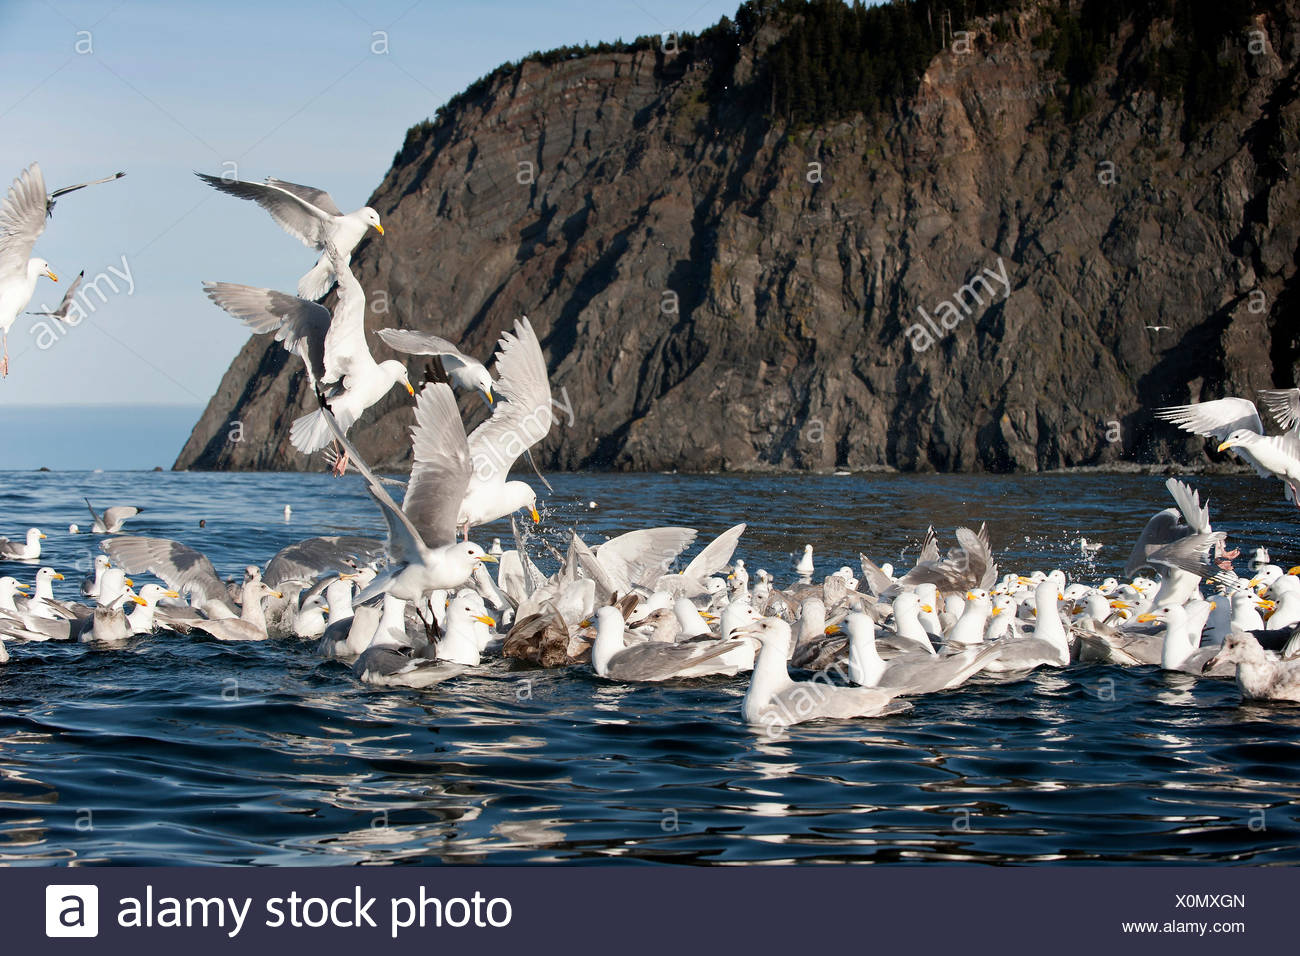 Glaucous-winged gulls (Larus glaucescens) feed at Gore Point, Alaska - Stock Image